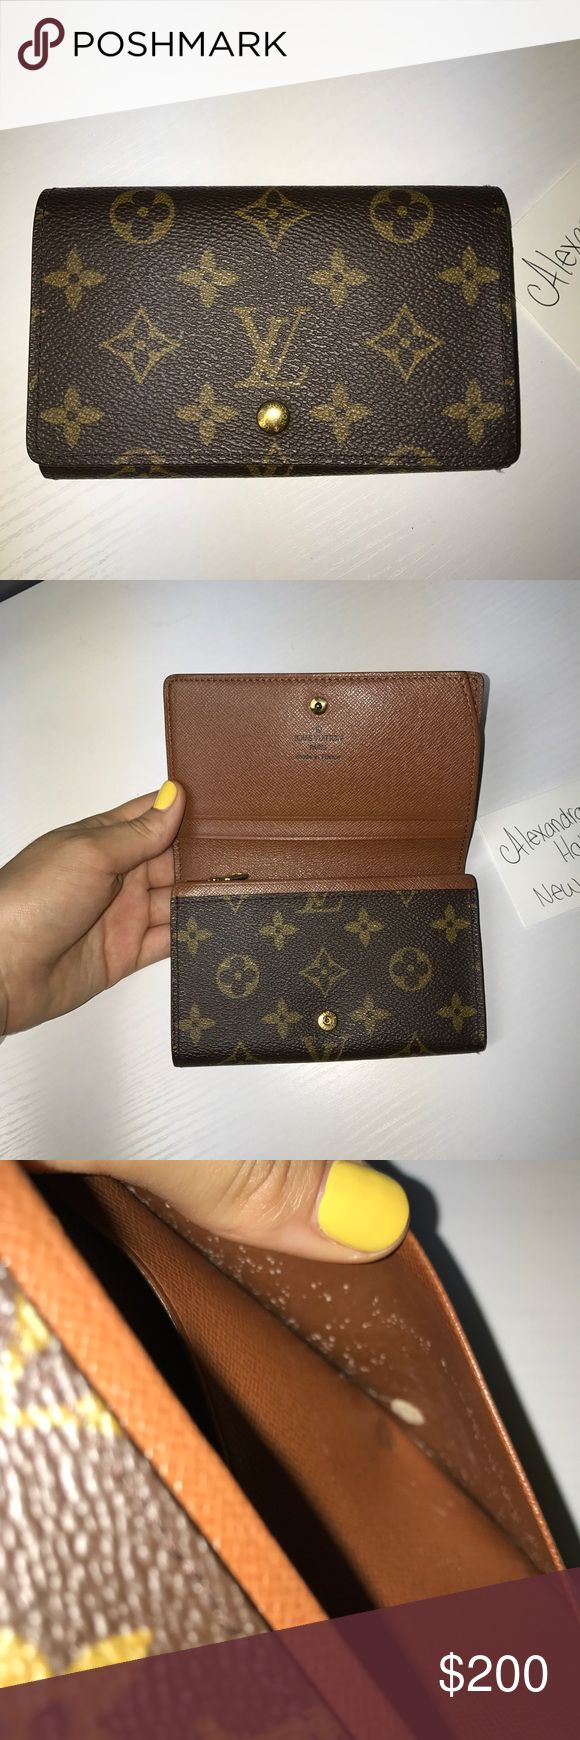 Louis Vuitton Porte Monnaie Wallet 💋Louis Vuitton Porte Monnaie Wallet💋 -Good used condition!  -The pockets have peeling to them!  -zipper is smooth!  -Canvas is in excellent condition! Louis Vuitton Bags Wallets